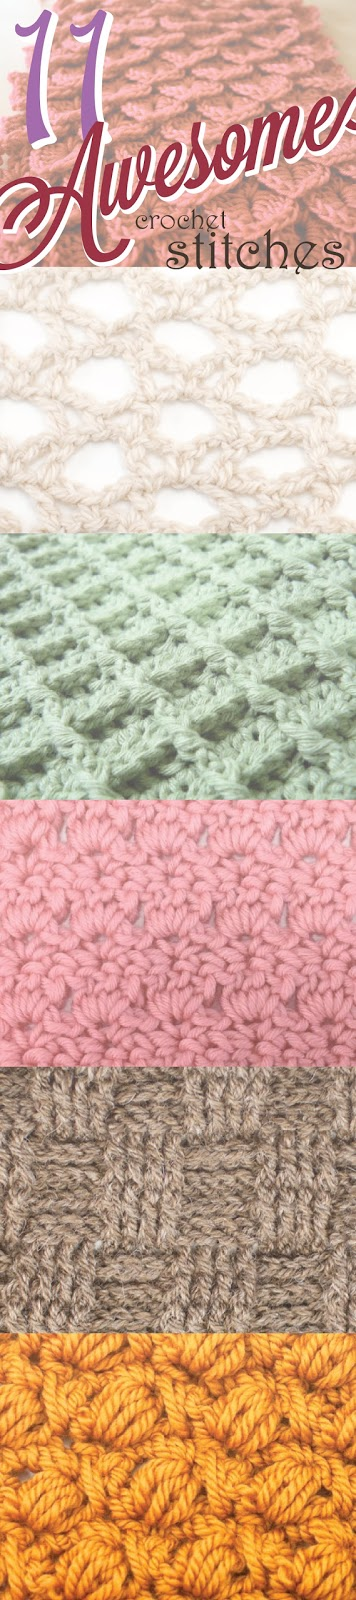 Cottontail Crochet: 11 Awesome Crochet Stitches